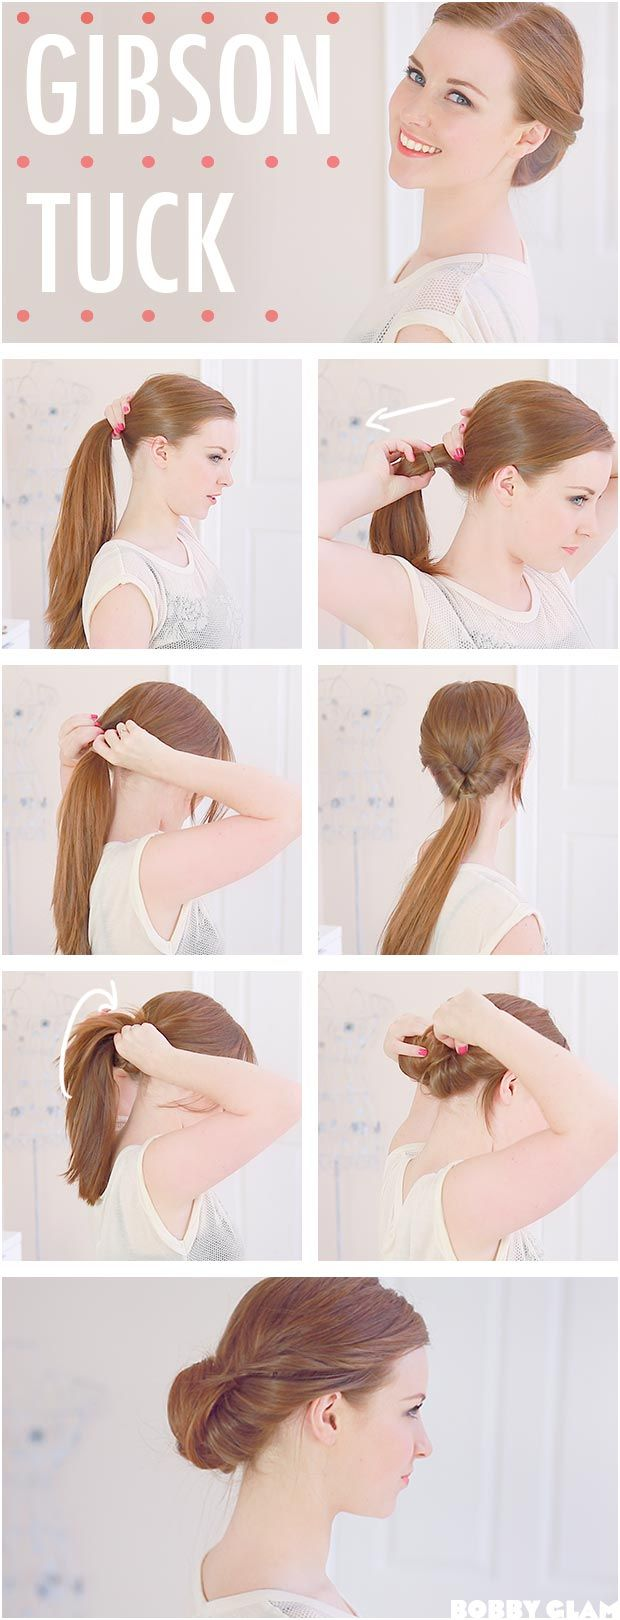 Practical Hairstyle The Gibson Tuck - DIY